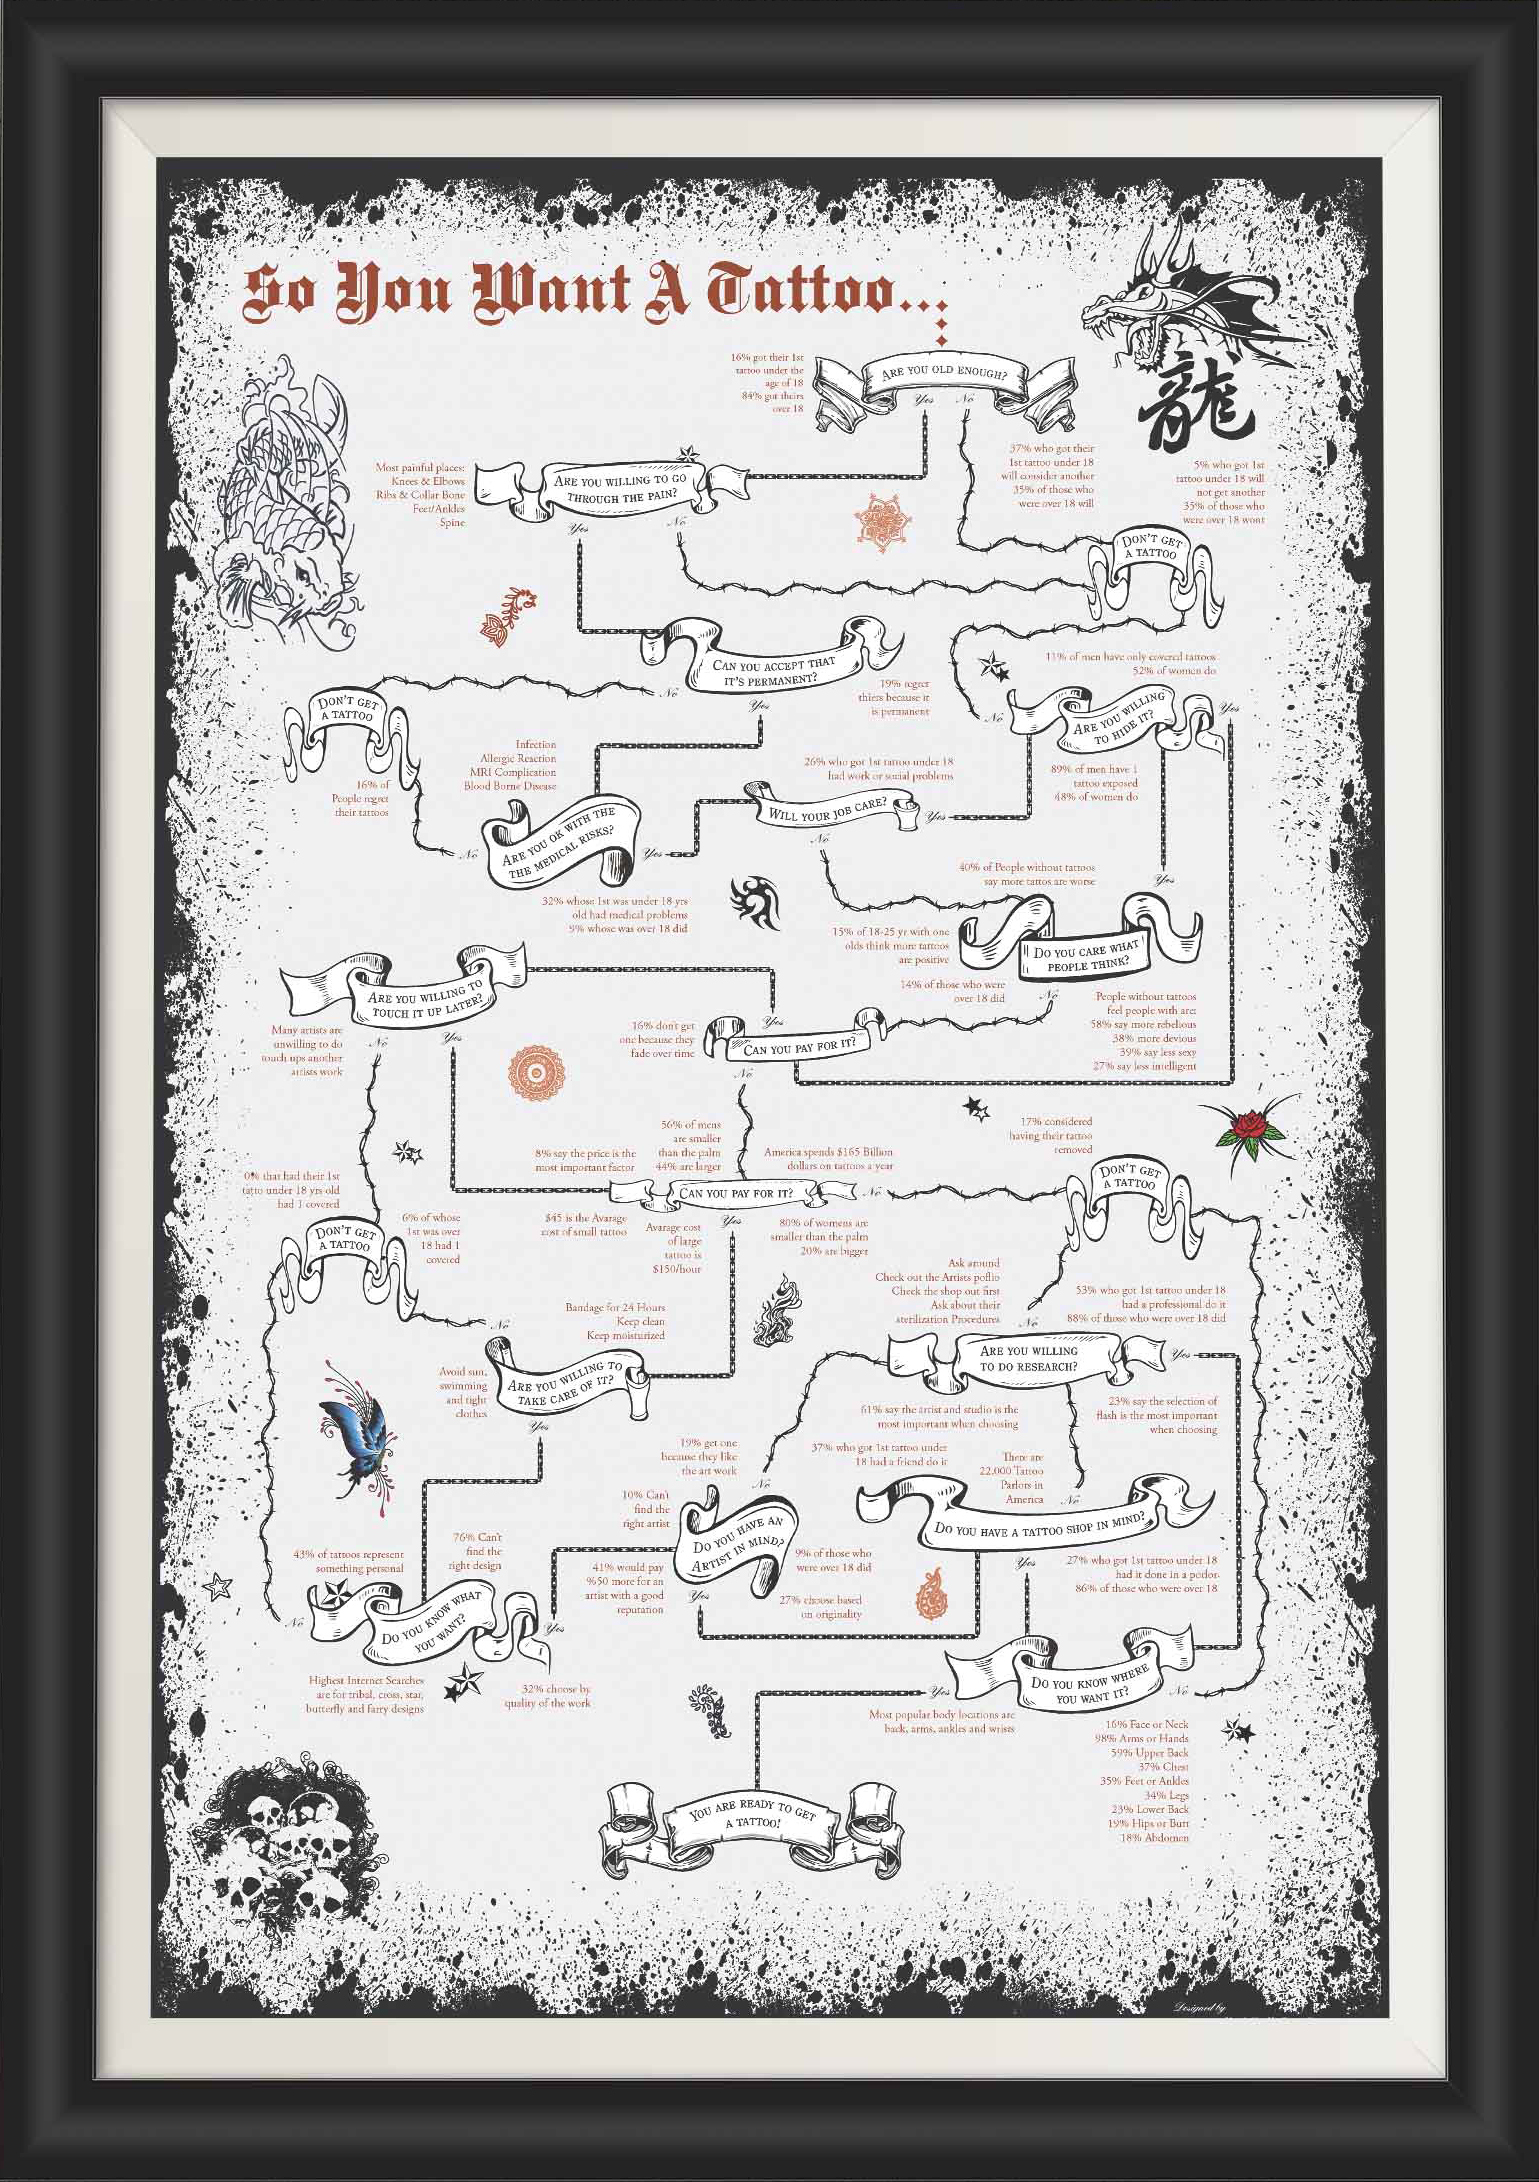 Tattoo Infographic Poster Frame